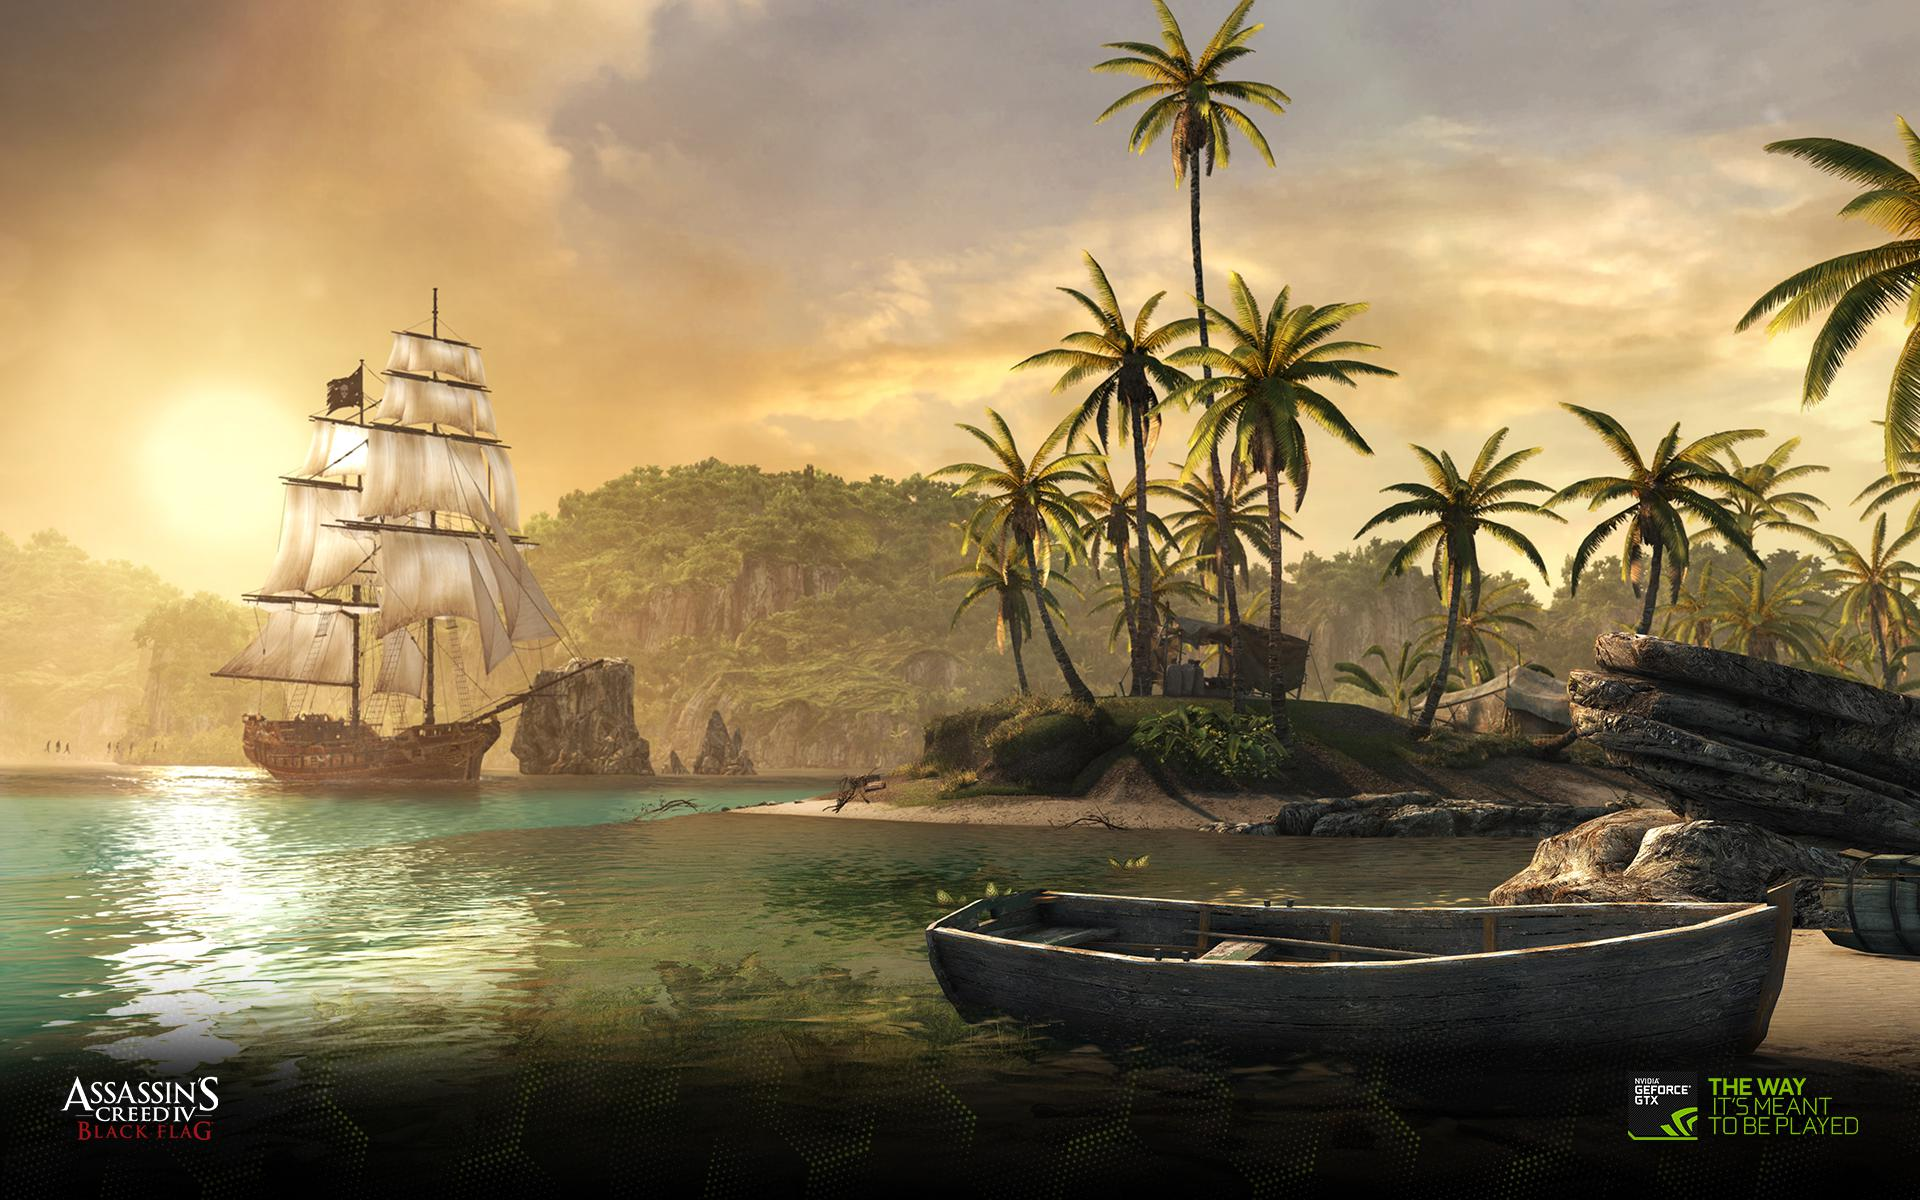 Assassins Creed Iv Black Flag Hd Desktop Wallpaper